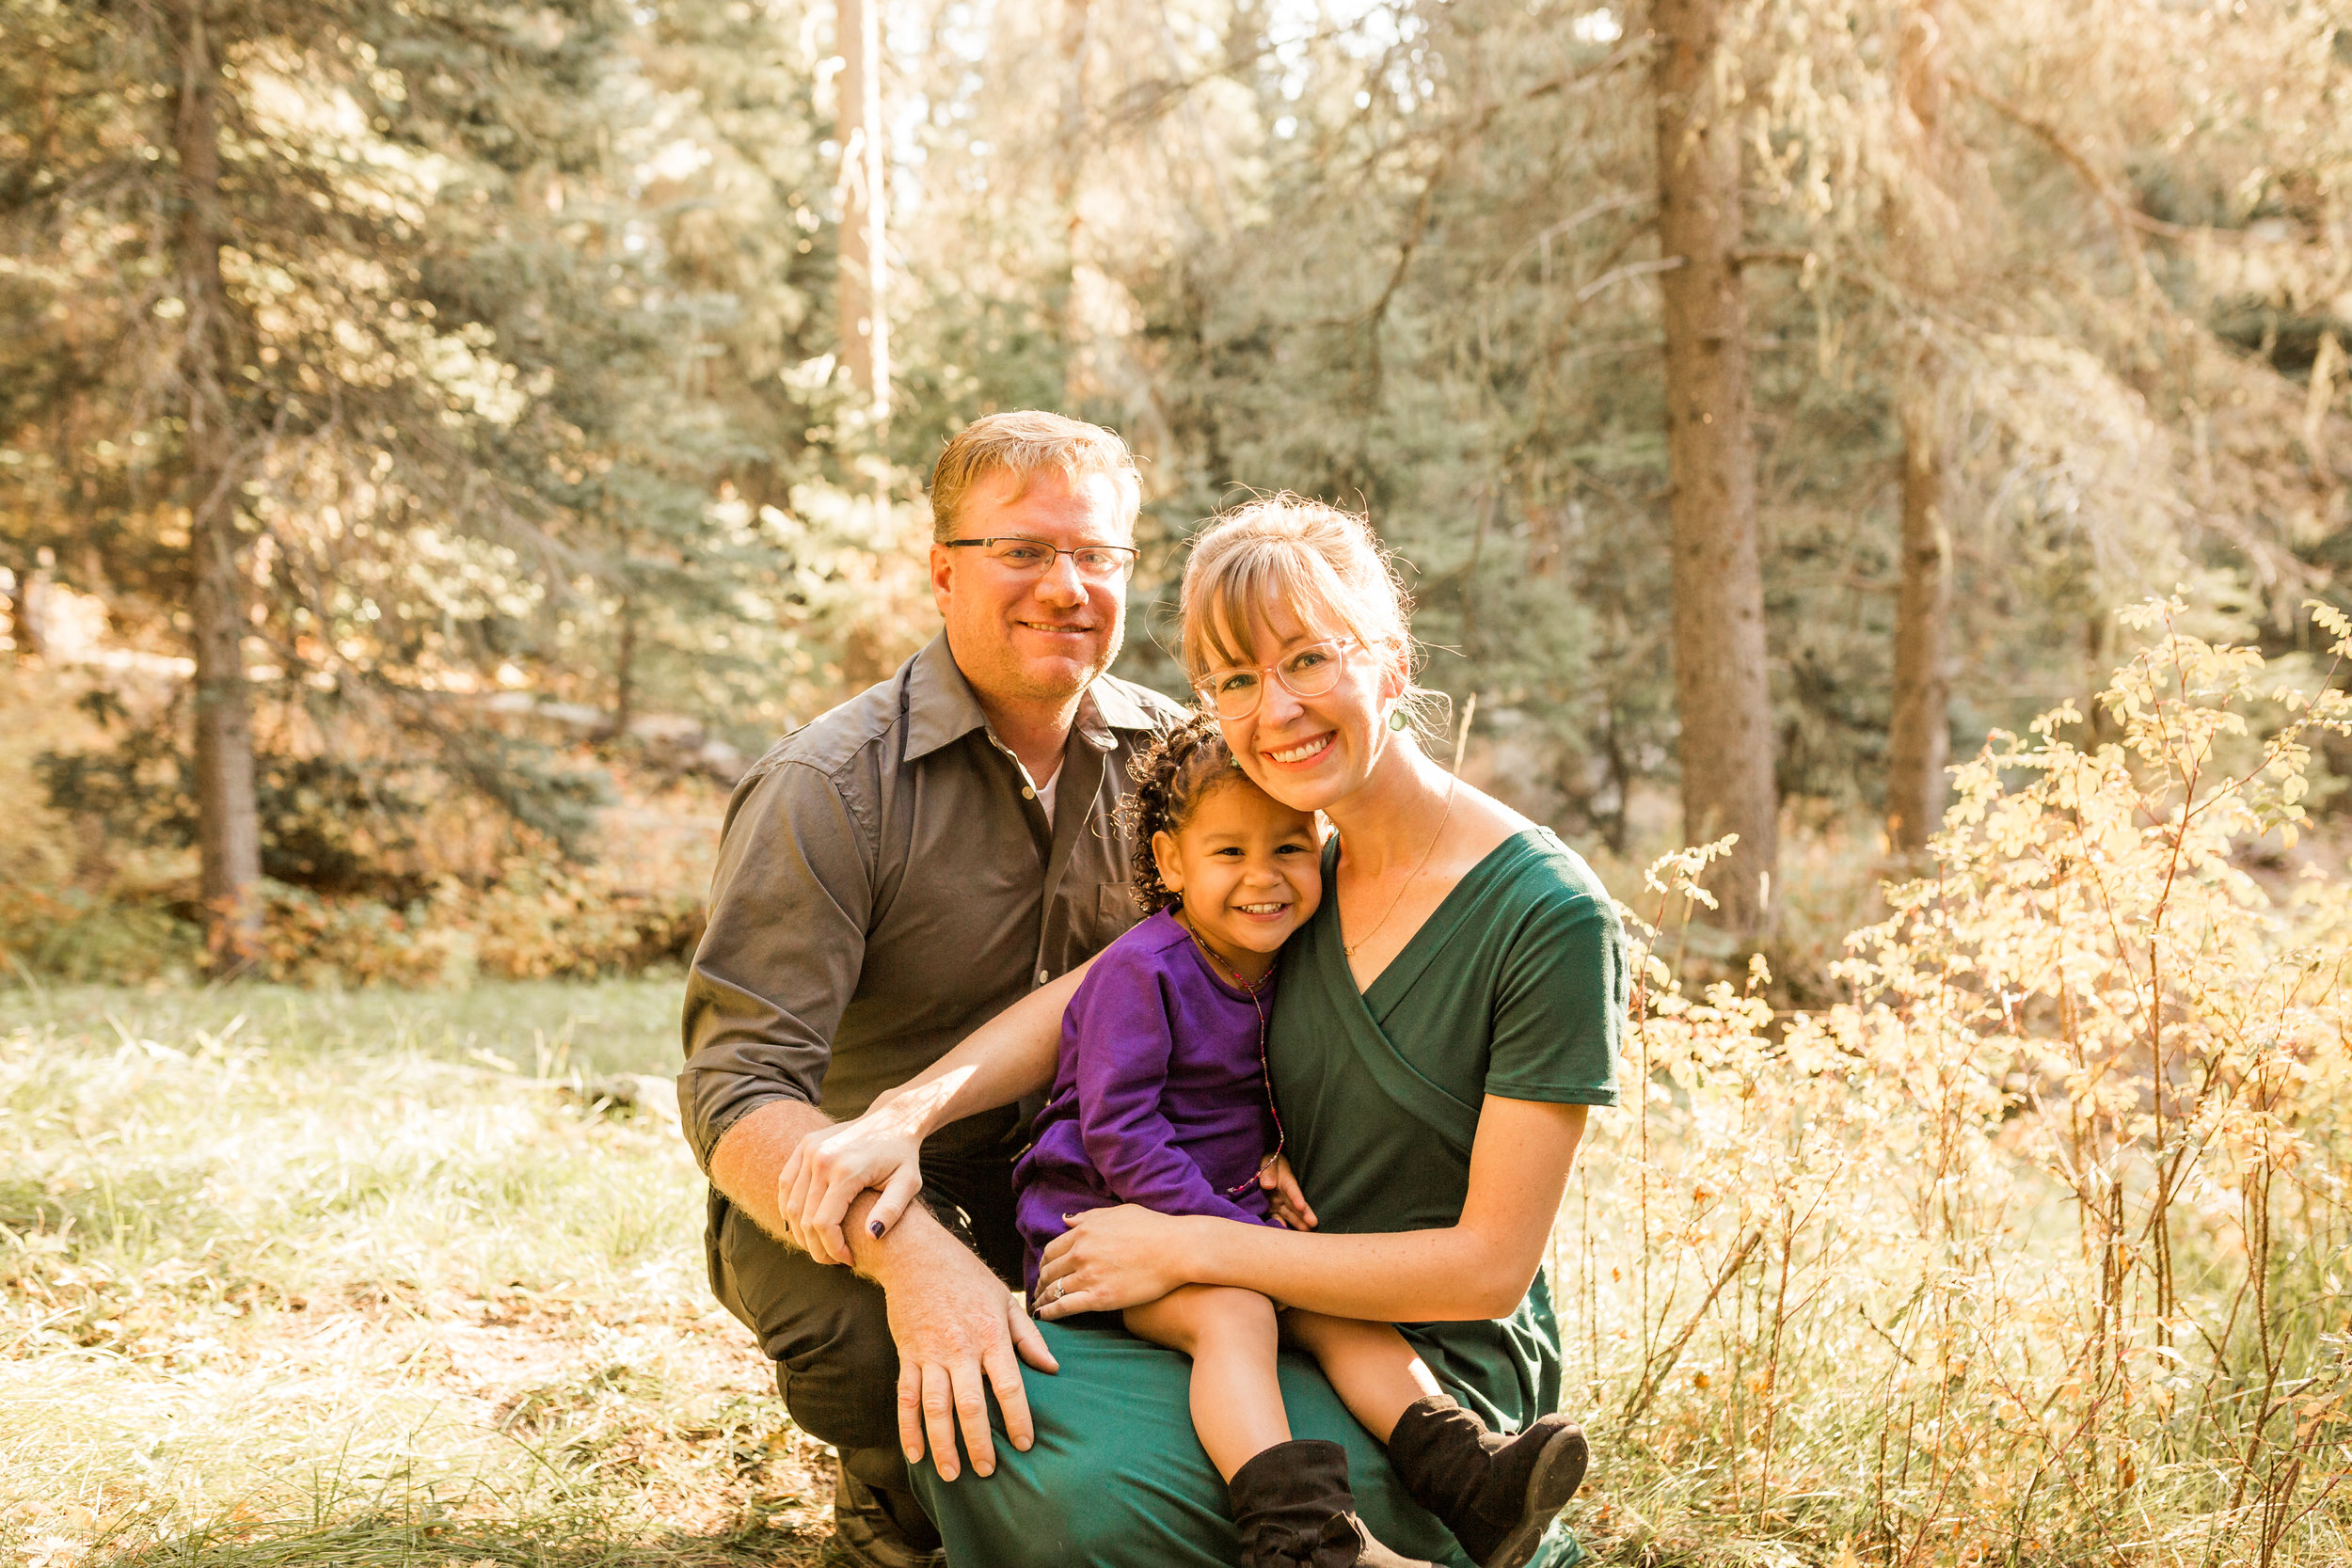 Loving, happy family excited to adopt another child